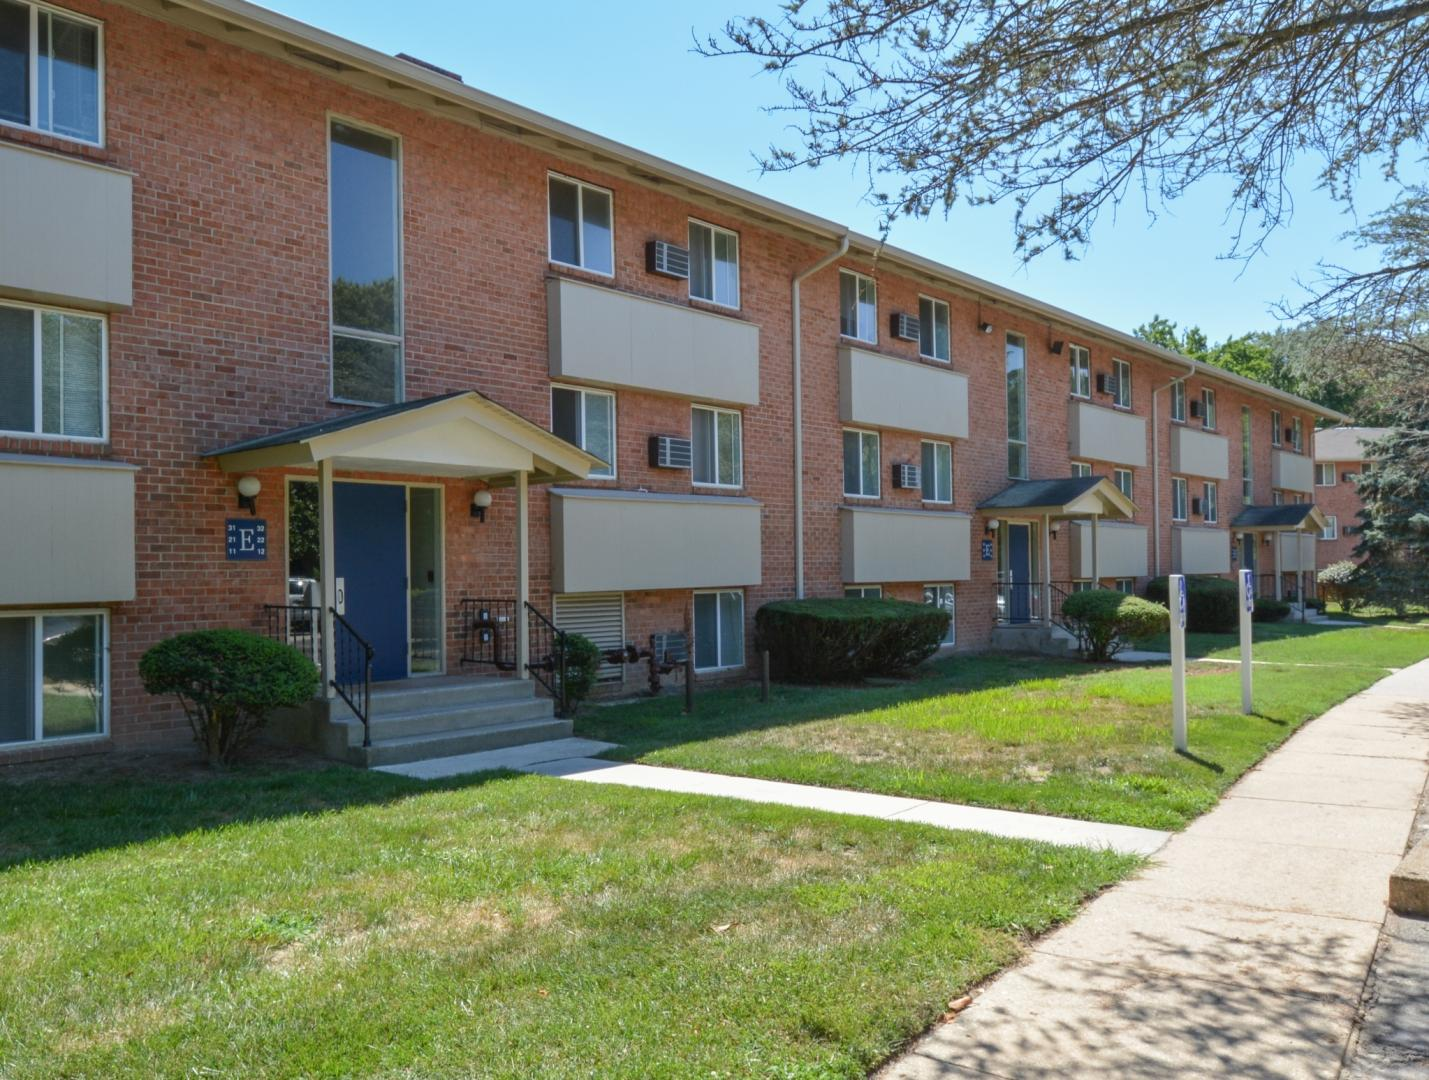 Apartments For Rent In Dover De - Best Appartment Image 2018